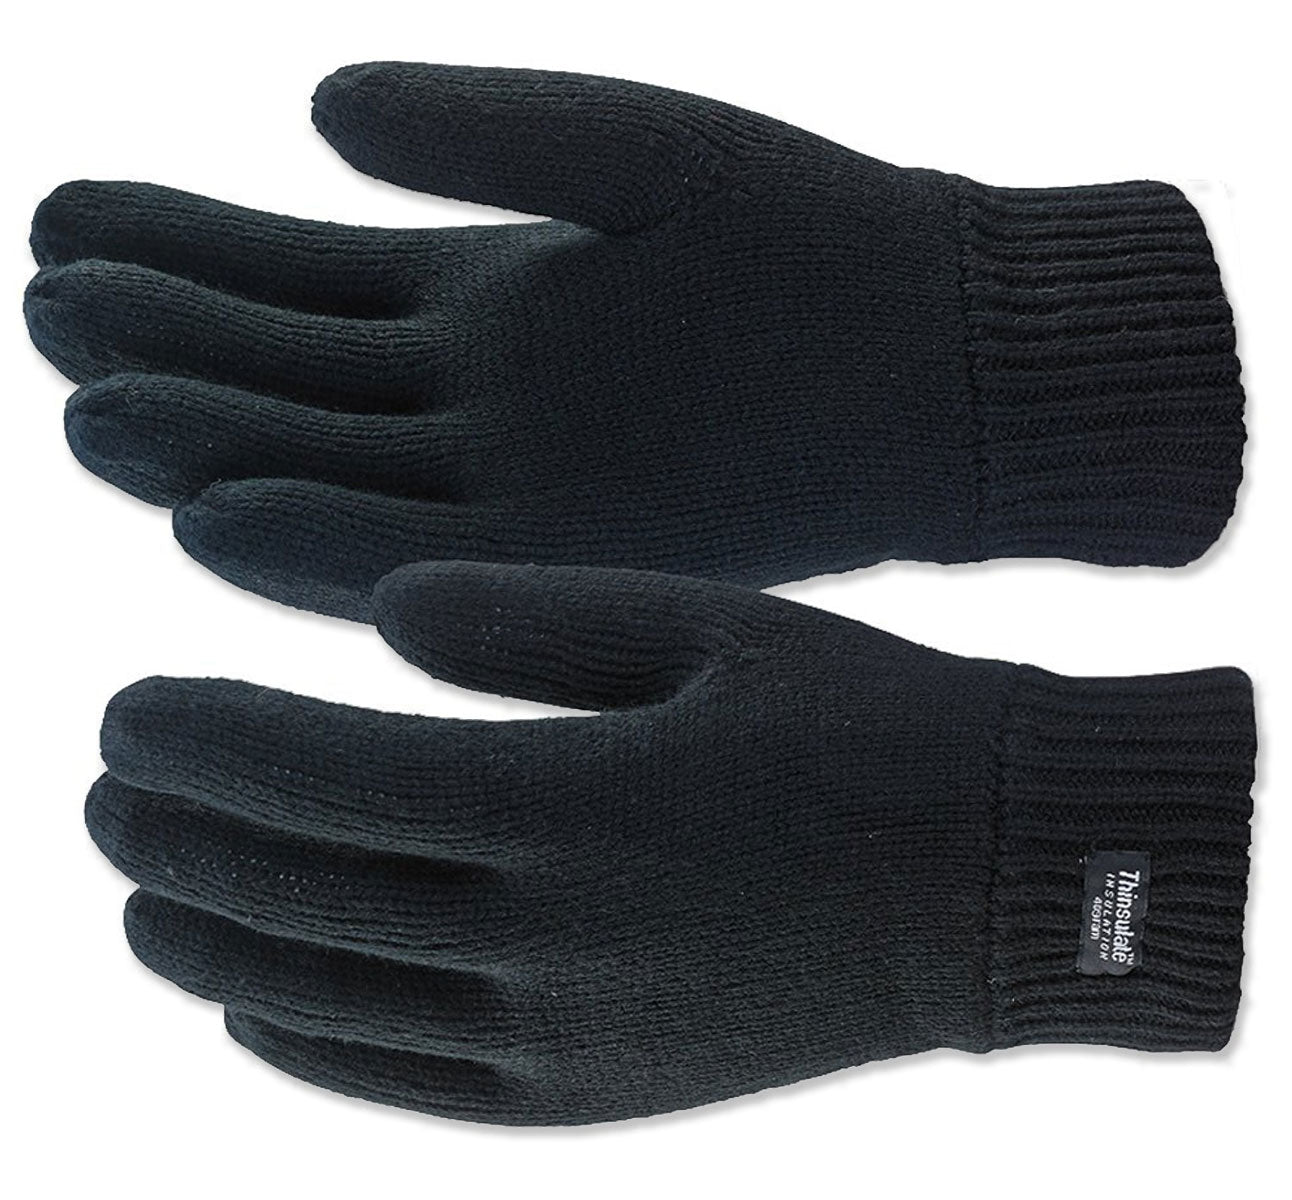 Knitted Gloves with Thinsulate Lining